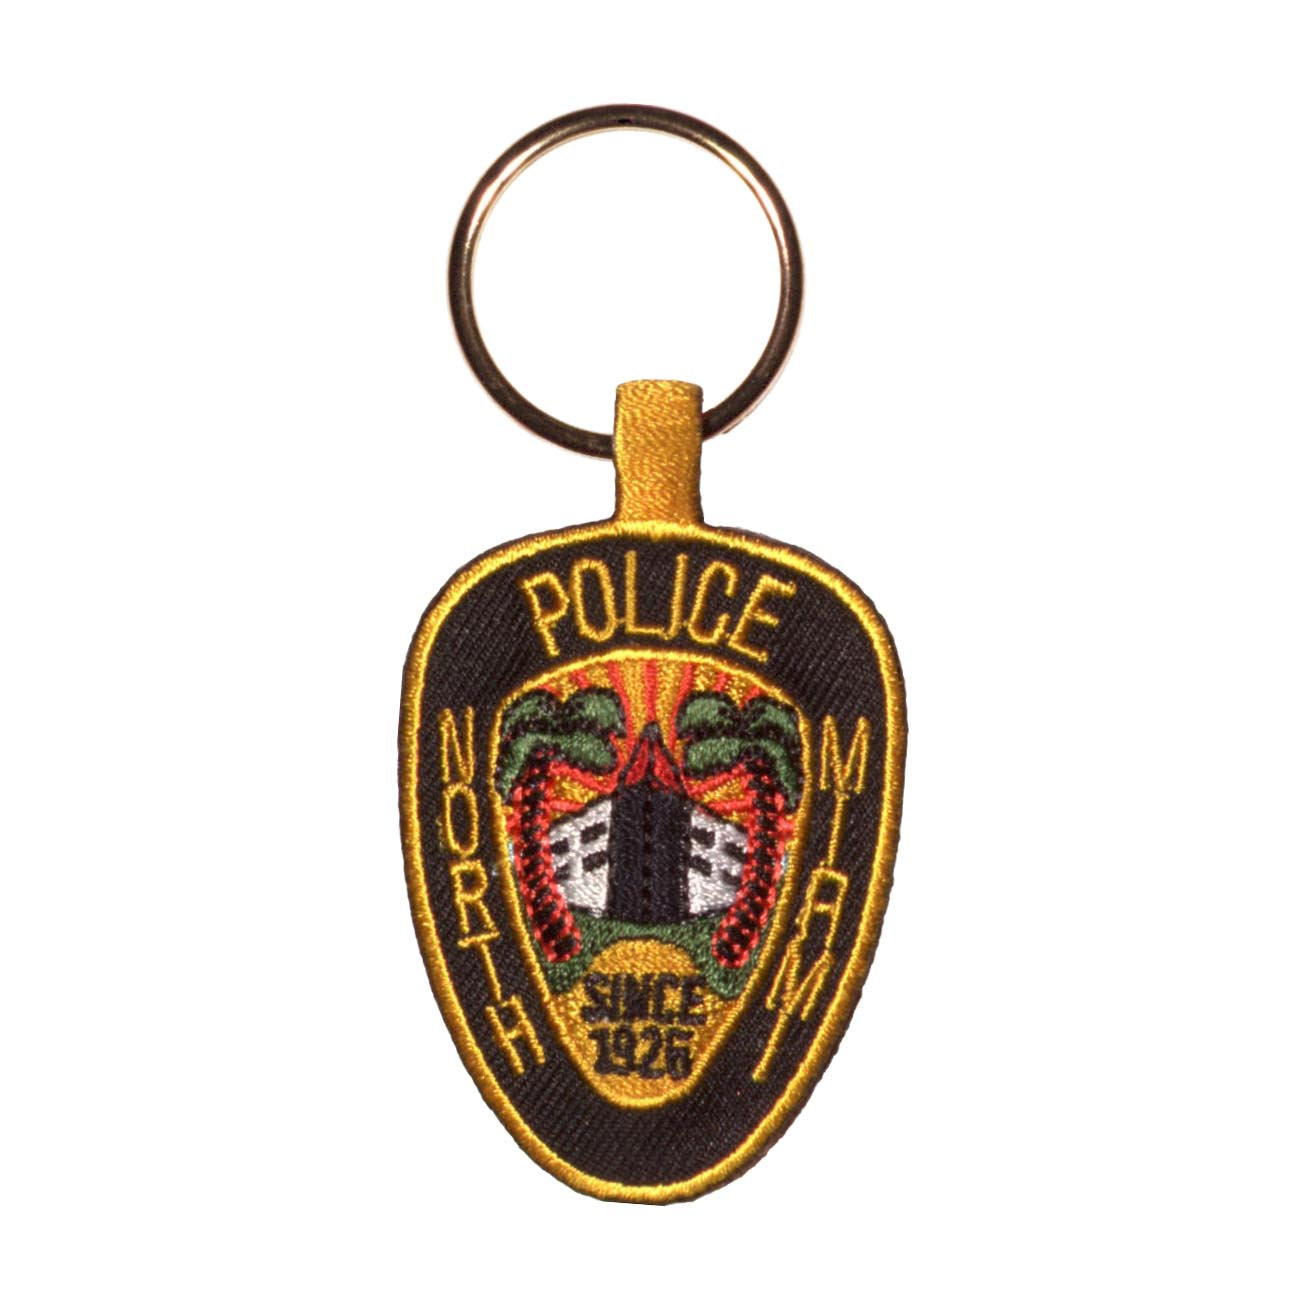 Embroidered key fob